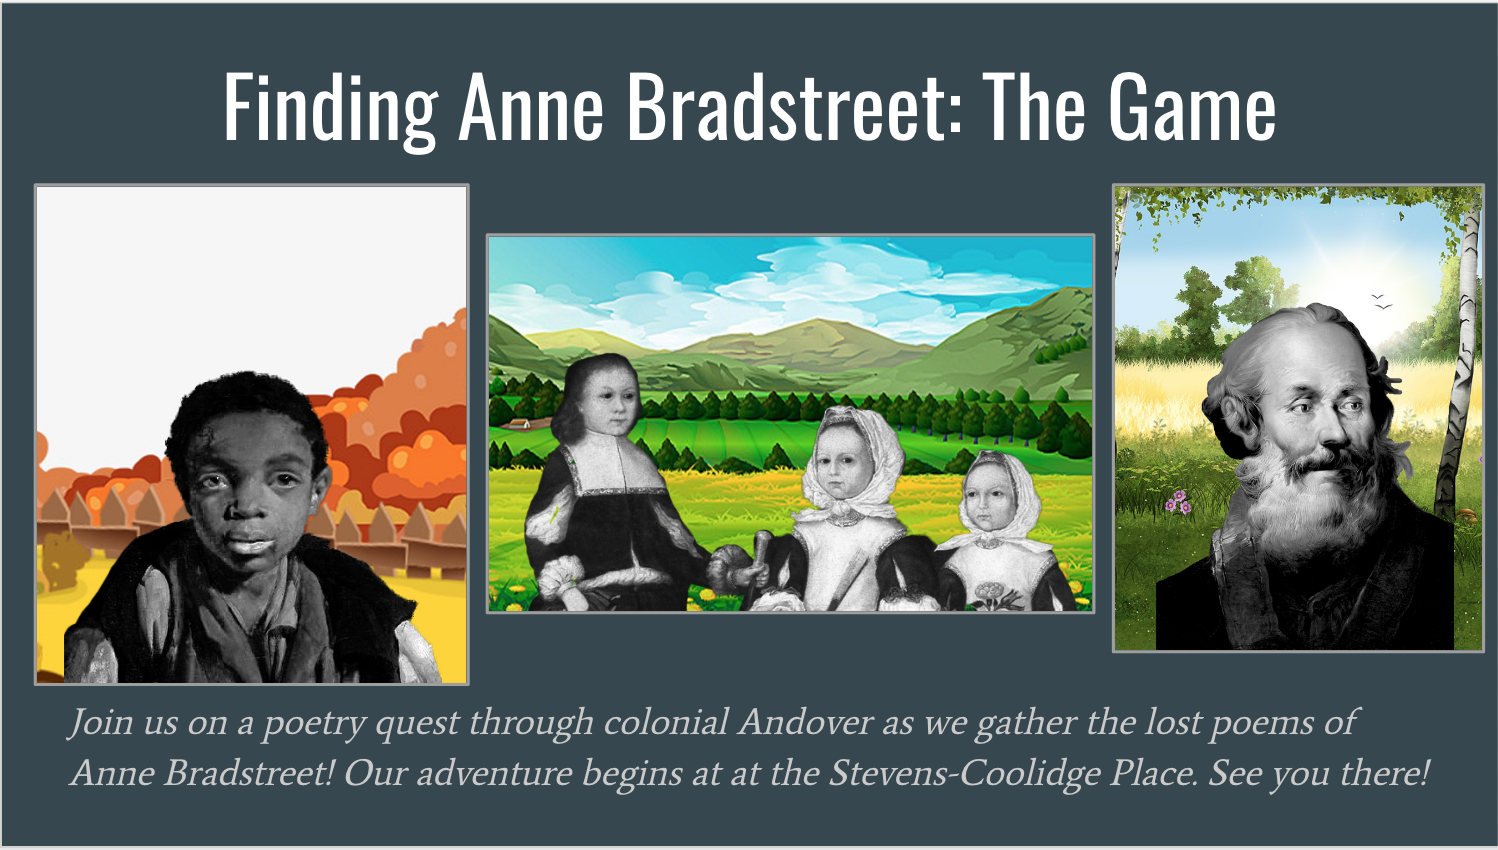 On your journey, you'll encounter Stacy, a 9-year-old who was enslaved in Dudley Bradstreet's home; three of Anne Bradstreet's children—Samuel, Mercy, and Dorothy; and Samuel Wardwell, a man executed for witchcraft in the 1690s (not before casting an accusation at Dudley and his wife).